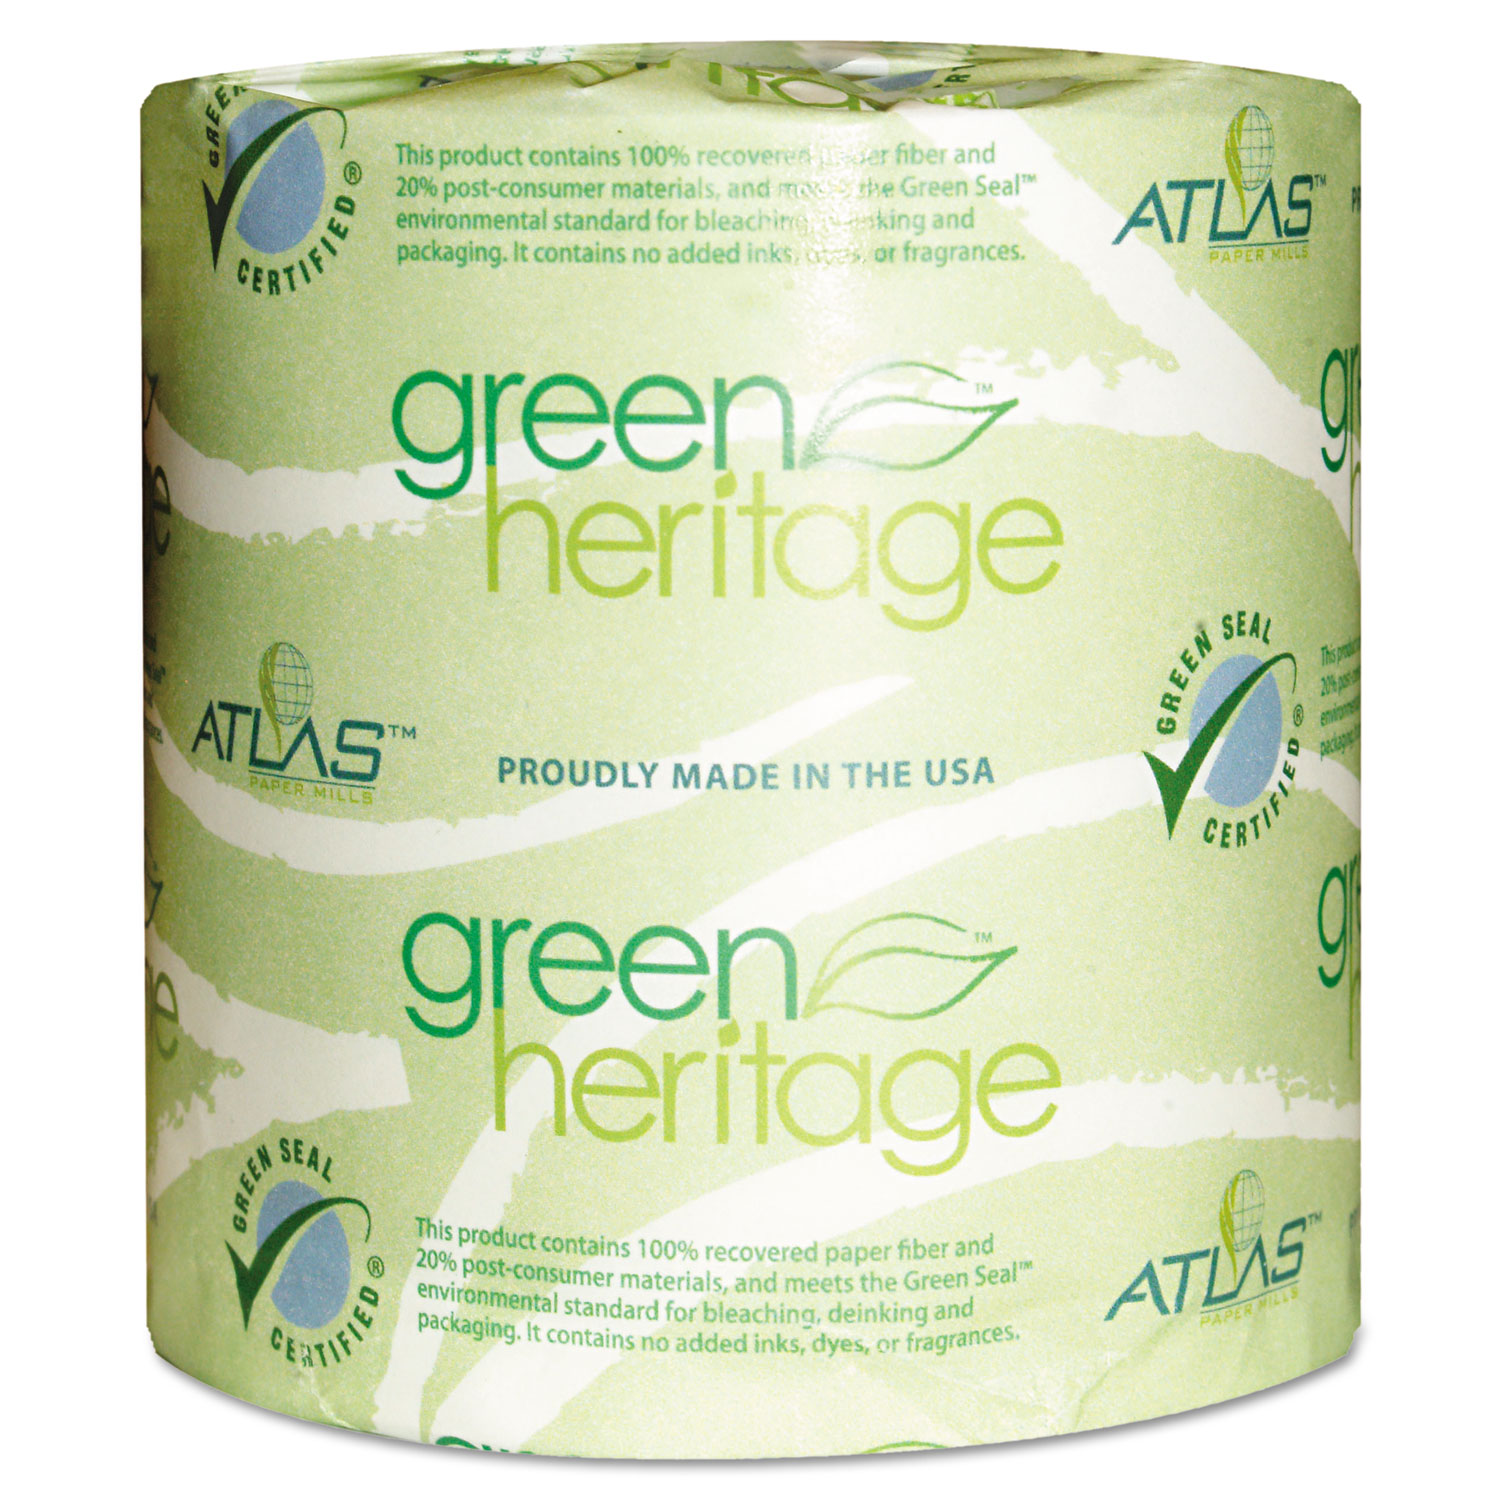 Green Heritage Toilet Tissue, 4.3 x 3.5 Sheets, 2-Ply, 500/Roll, 48 Rolls/CT